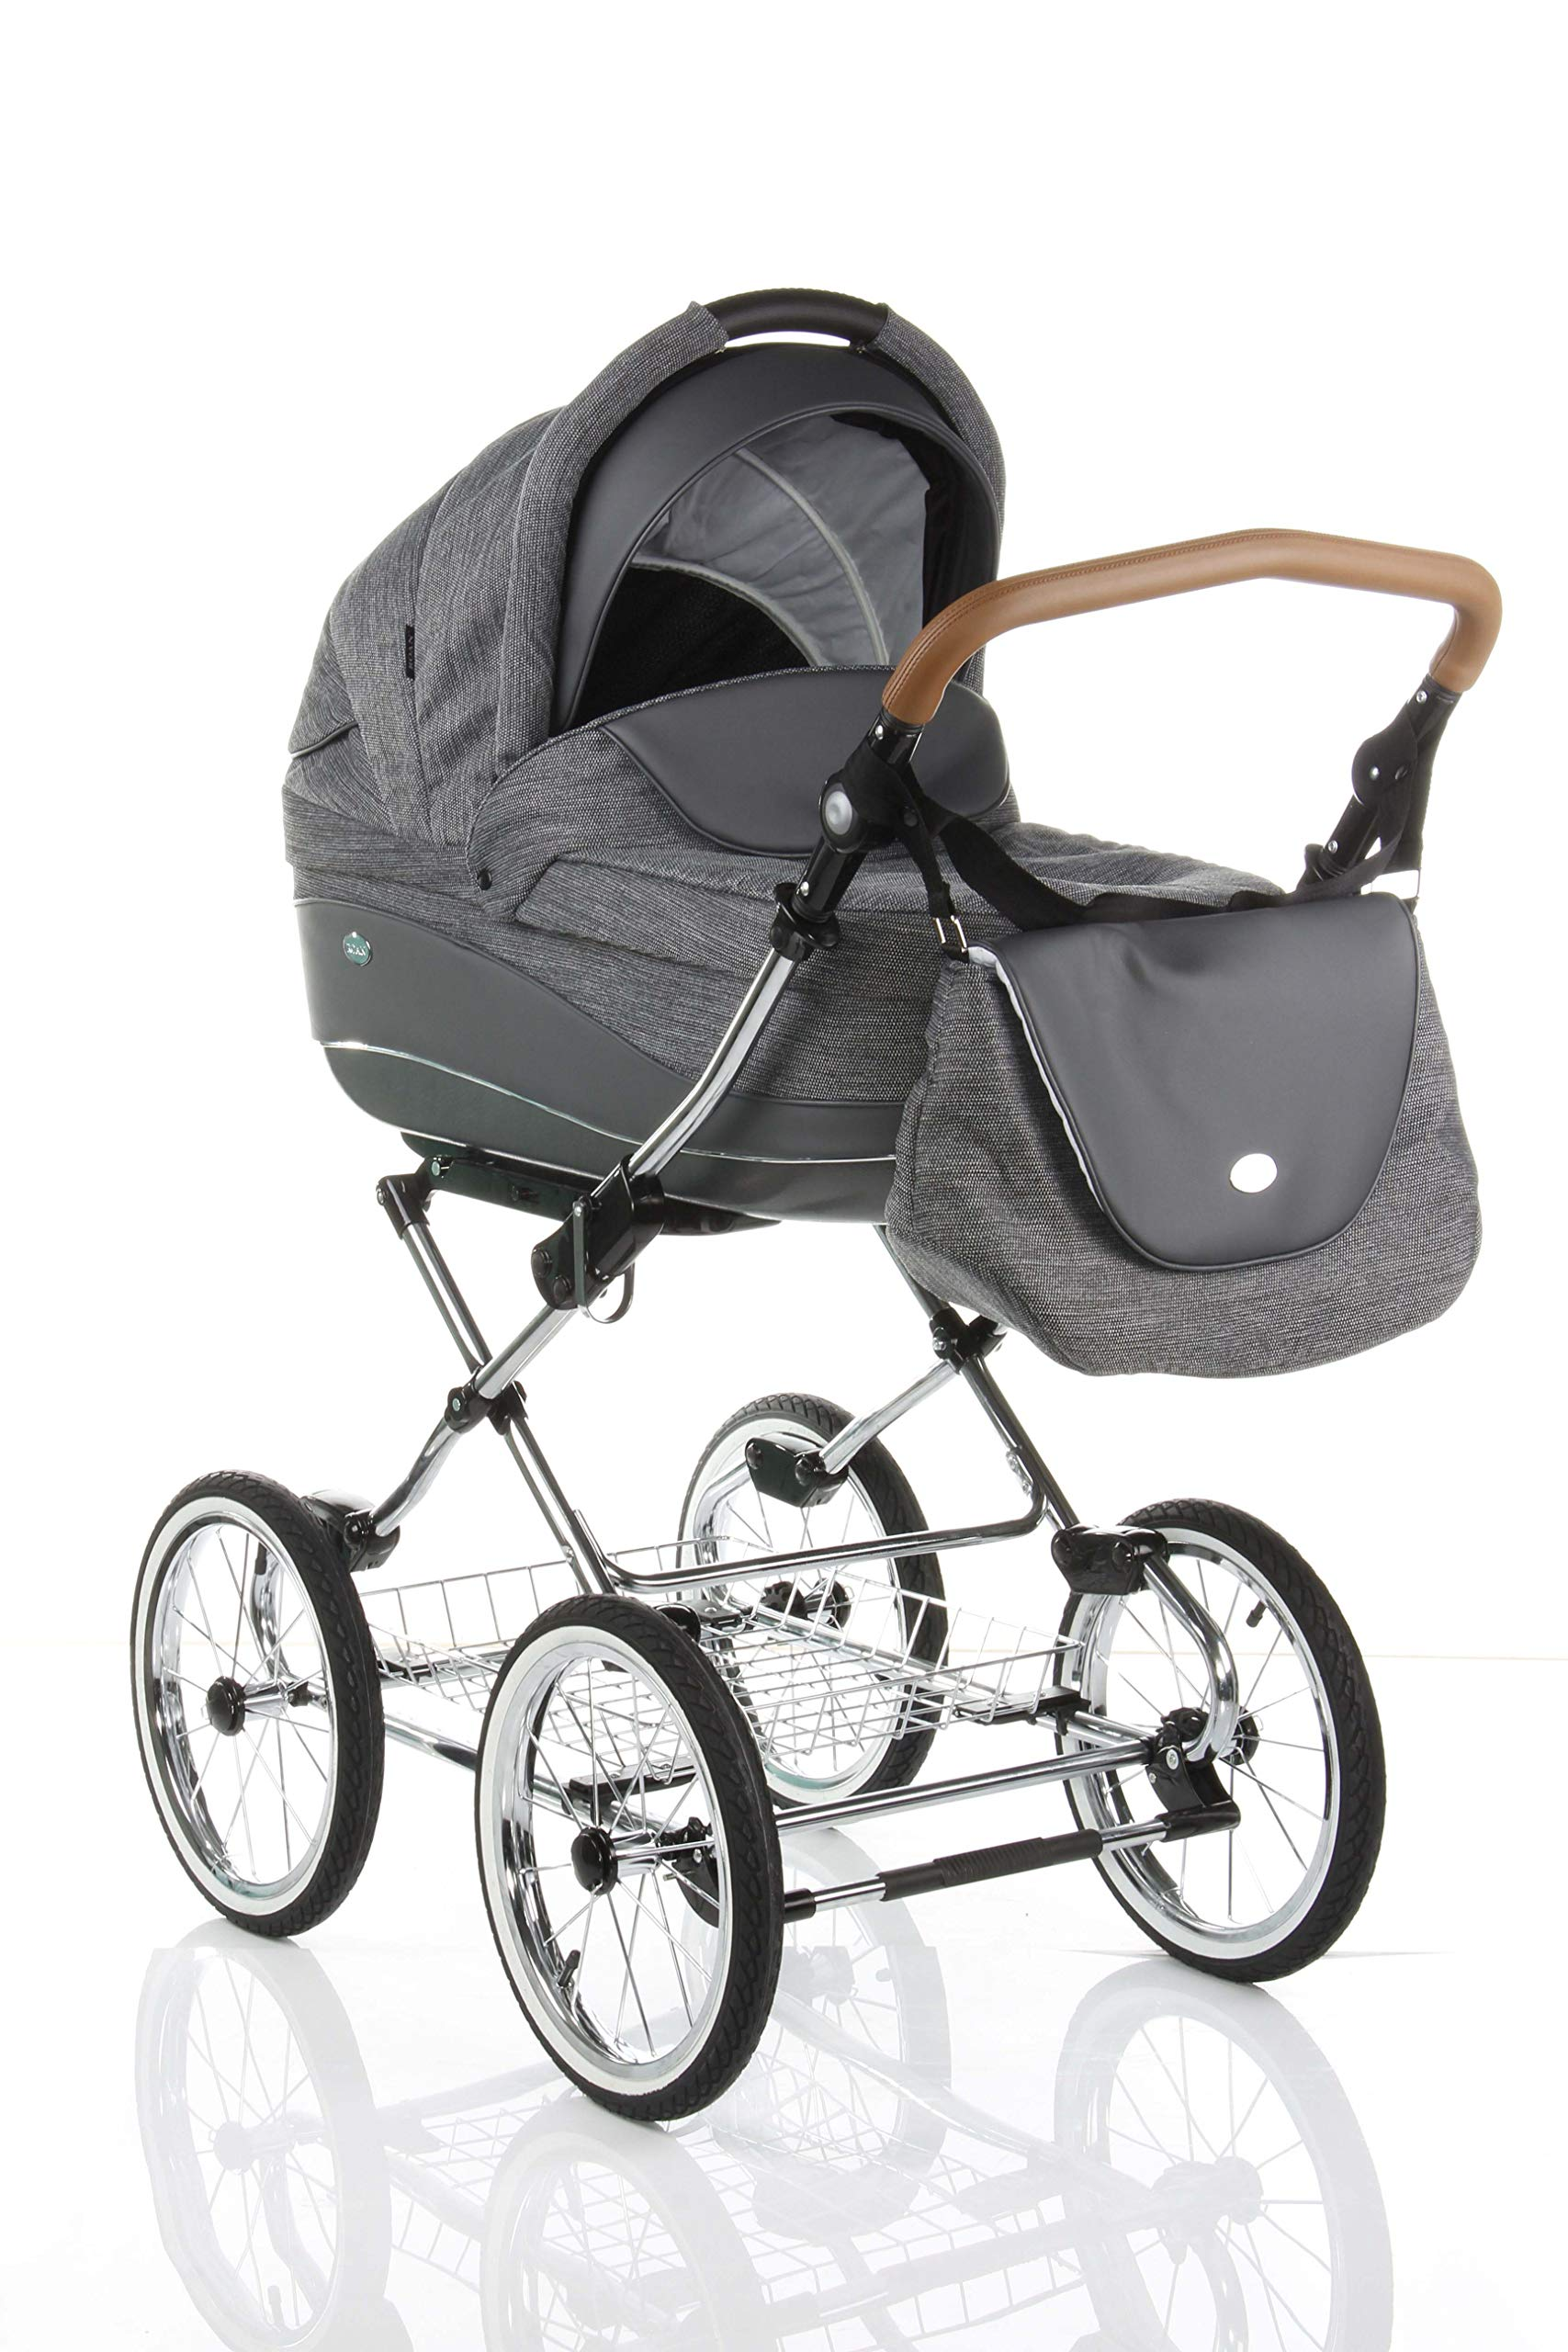 Children's Pram Buggy Stroller Combination Car seat Classic Retro Baby Carrier ROAN Emma (E-81 Dark Grey Melange-Grey Leather, 2IN1) JUNAMA Frame / wheels Sturdy and lightweight aluminum frame construction with folding function 1-click system for easy assembly and disassembly Practical carrying handle for easy storage of the folded frame Wheels for inflating (14 inch) removable wheels Brake system with central brake Height-adjustable push handle - 10-fold matching shopping basket Dimensions folded with wheels: 86 x 60 x 40 cm folded without wheels: 76 x 60 x 26 cm Total height of the stroller to hood top: 106 cm Height of the tub from the ground: 60 cm Wheelbase External dimensions: 80x 58 cm Variable height of the push handle: 77- 119 cm Weight of the frame incl. Wheels and carrying bag 15 kg Carrycot Length and width of carrycot outside: 88 x 42 cm Carrying bag length and width inside: 76 x 35 cm Sturdy plastic tub with comfortable mattress and side protection Ventilation slots on the plastic tub The baby car seat 0-13 kg Maxi-Cosi in black incl. Adapter 1